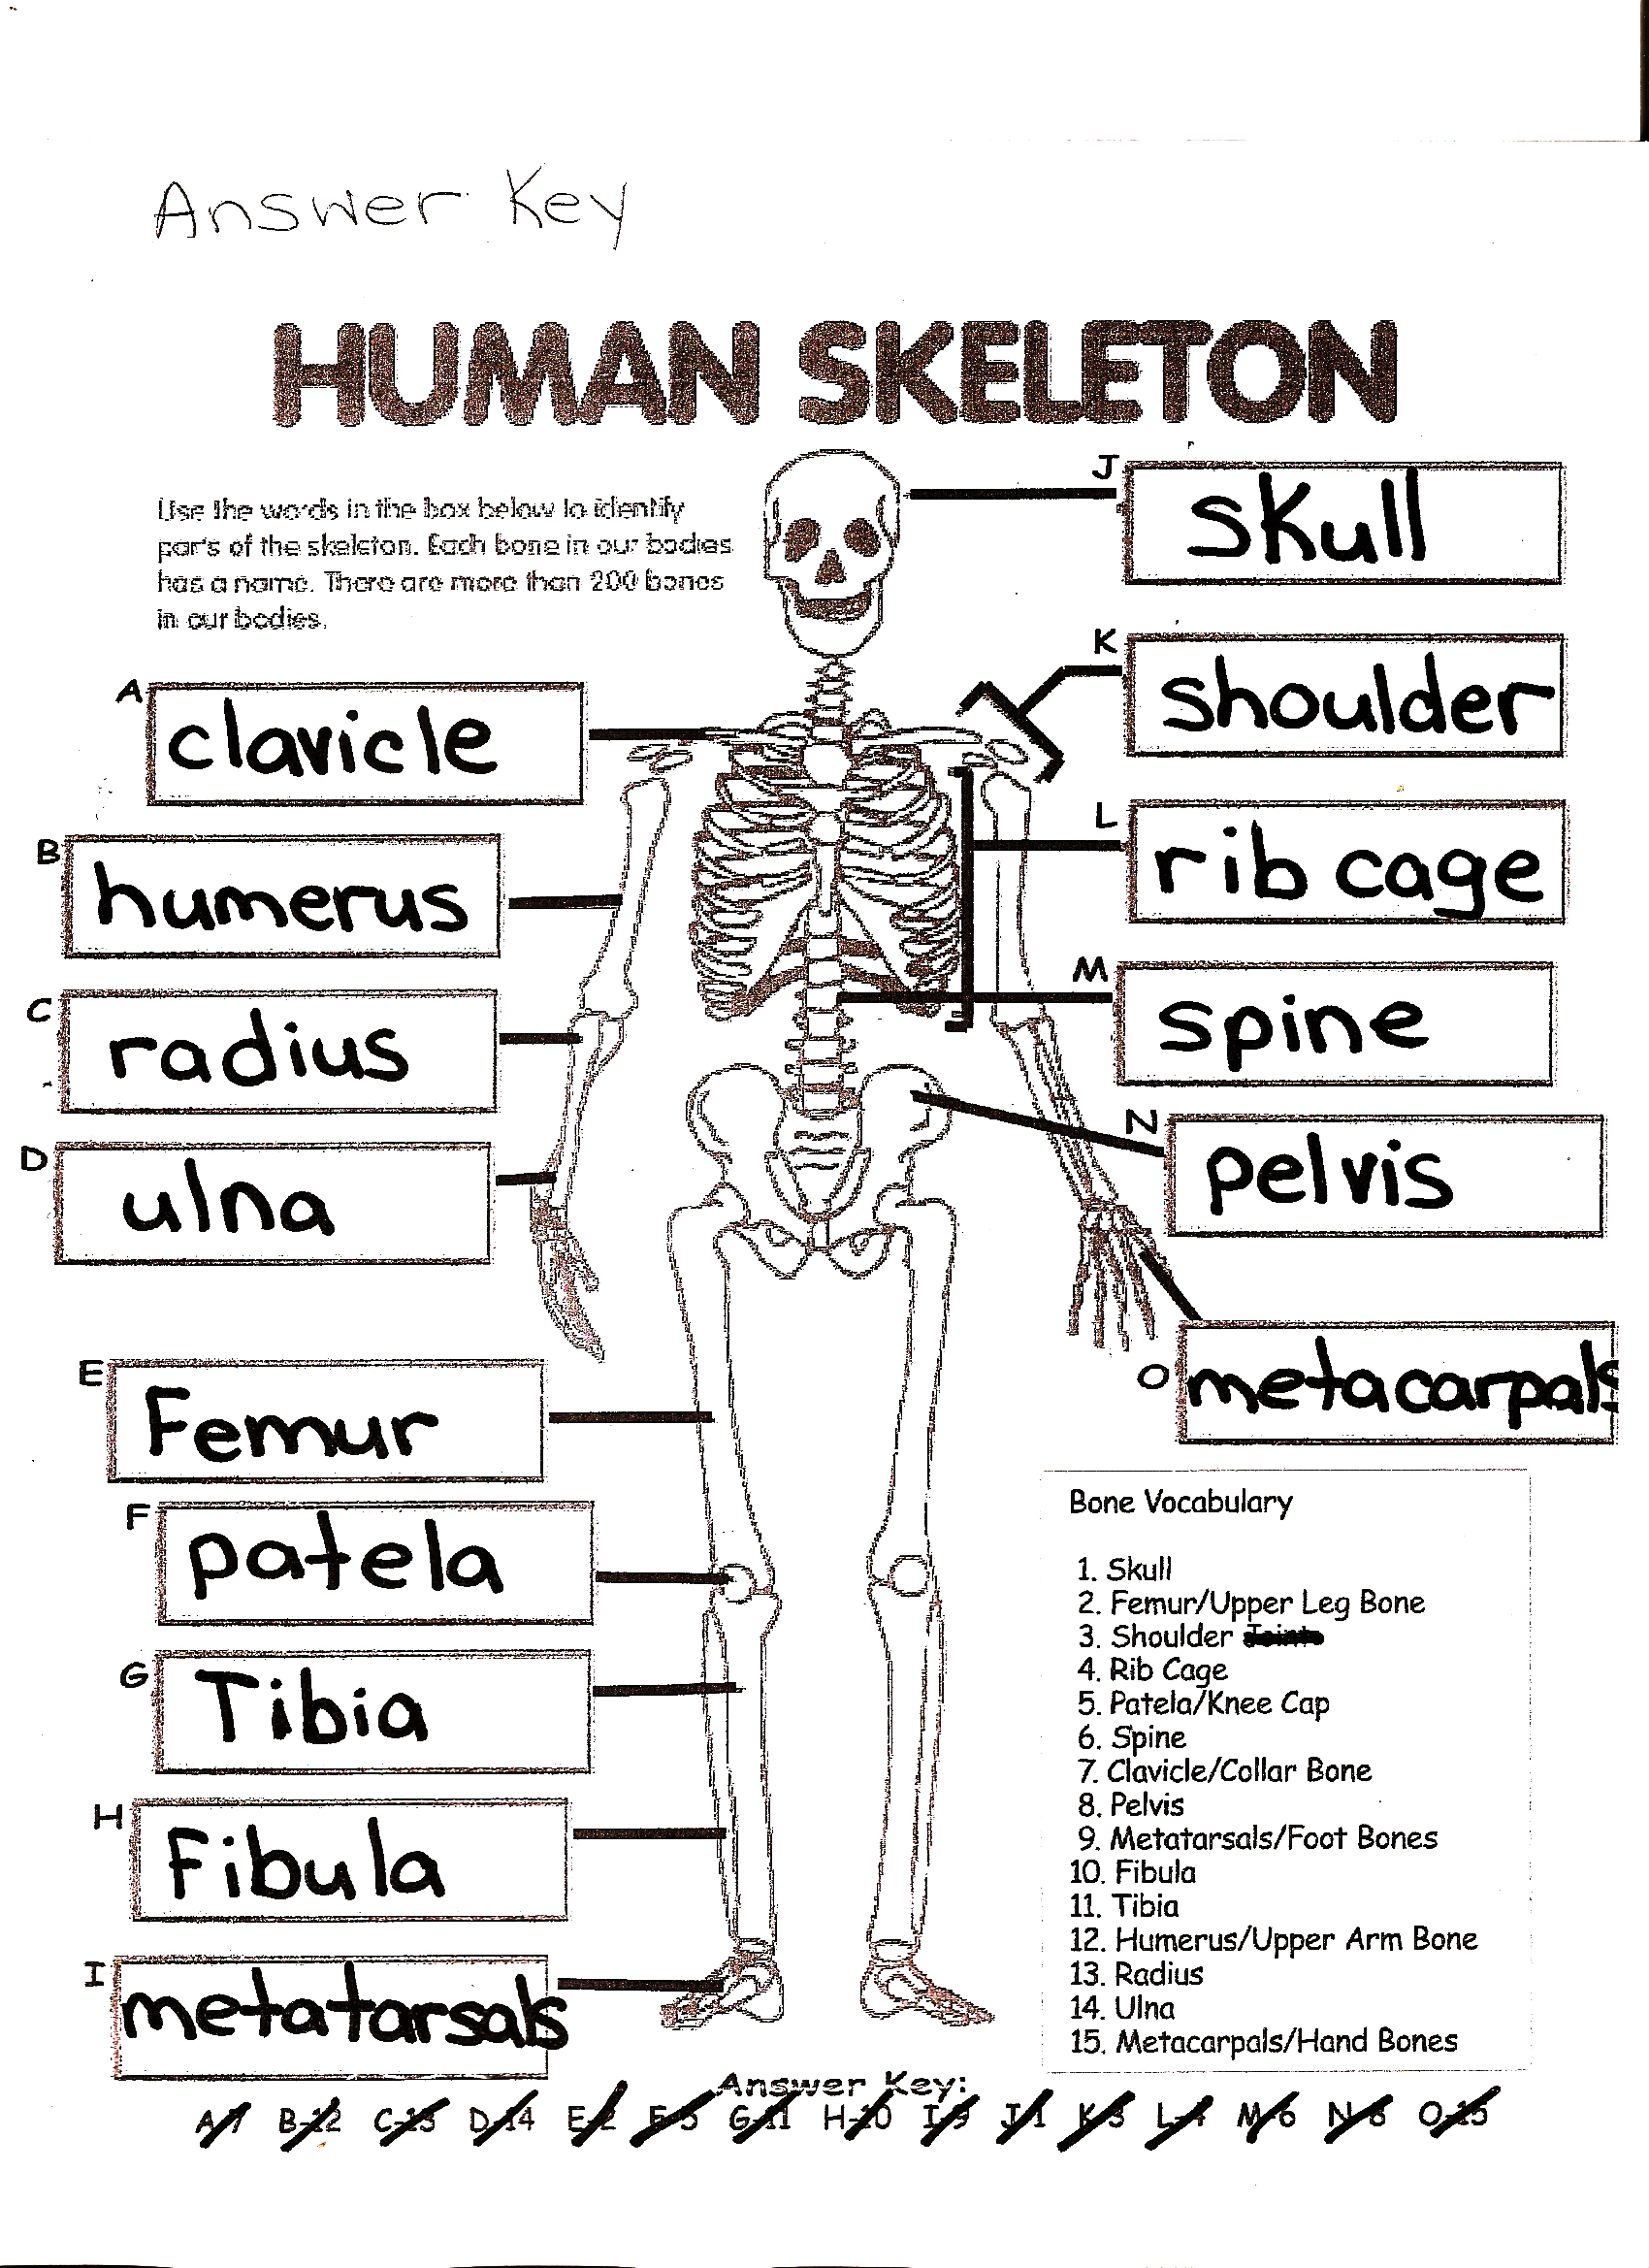 the human skeleton worksheet answers – citybeauty, Skeleton